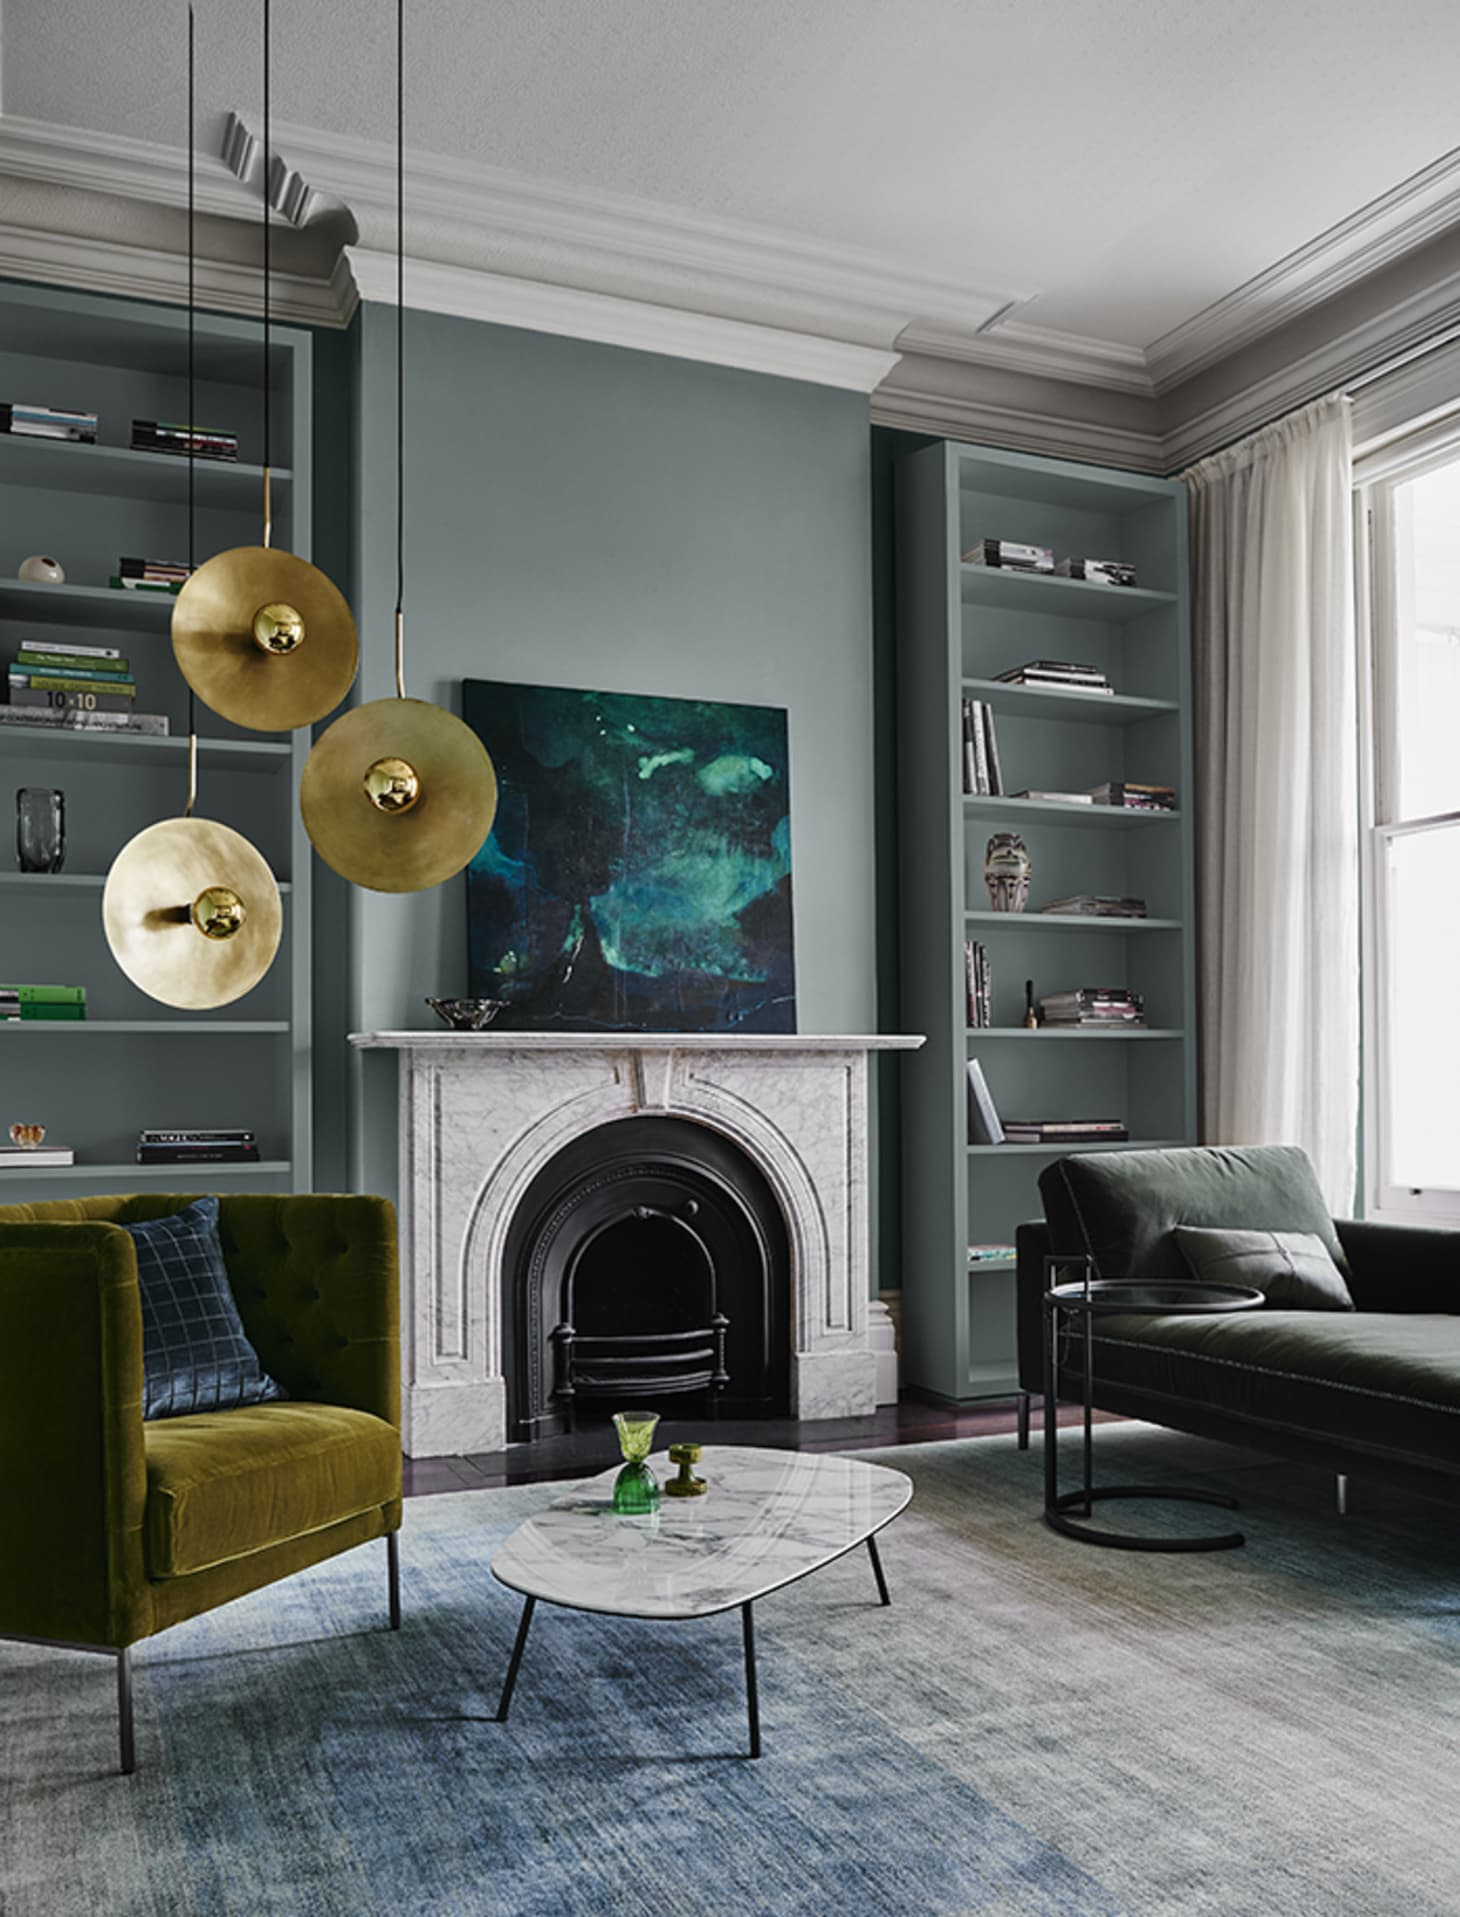 at style 2019 12 Modern Living Room image17